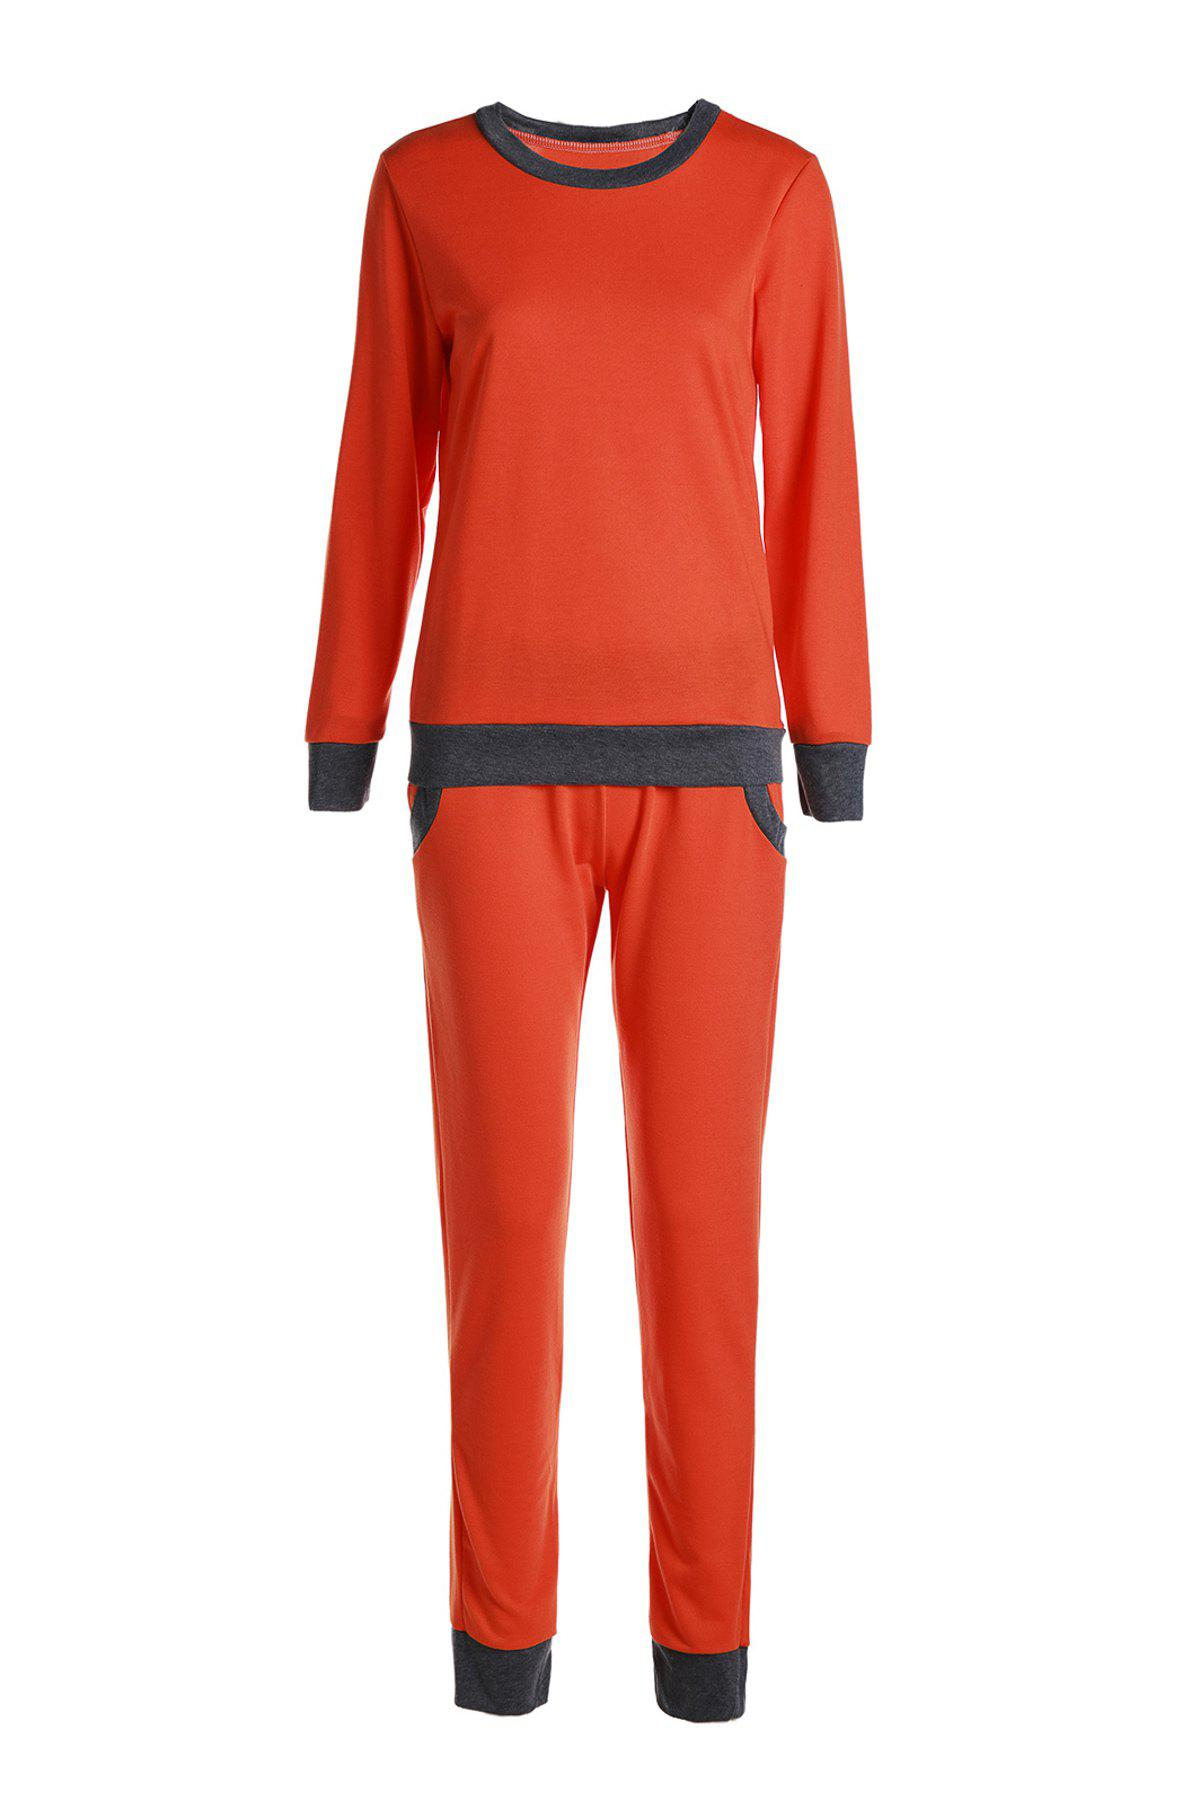 Casual Col rond Activewear de manches longues Color Block de poche design Femmes Suit Tangerine S